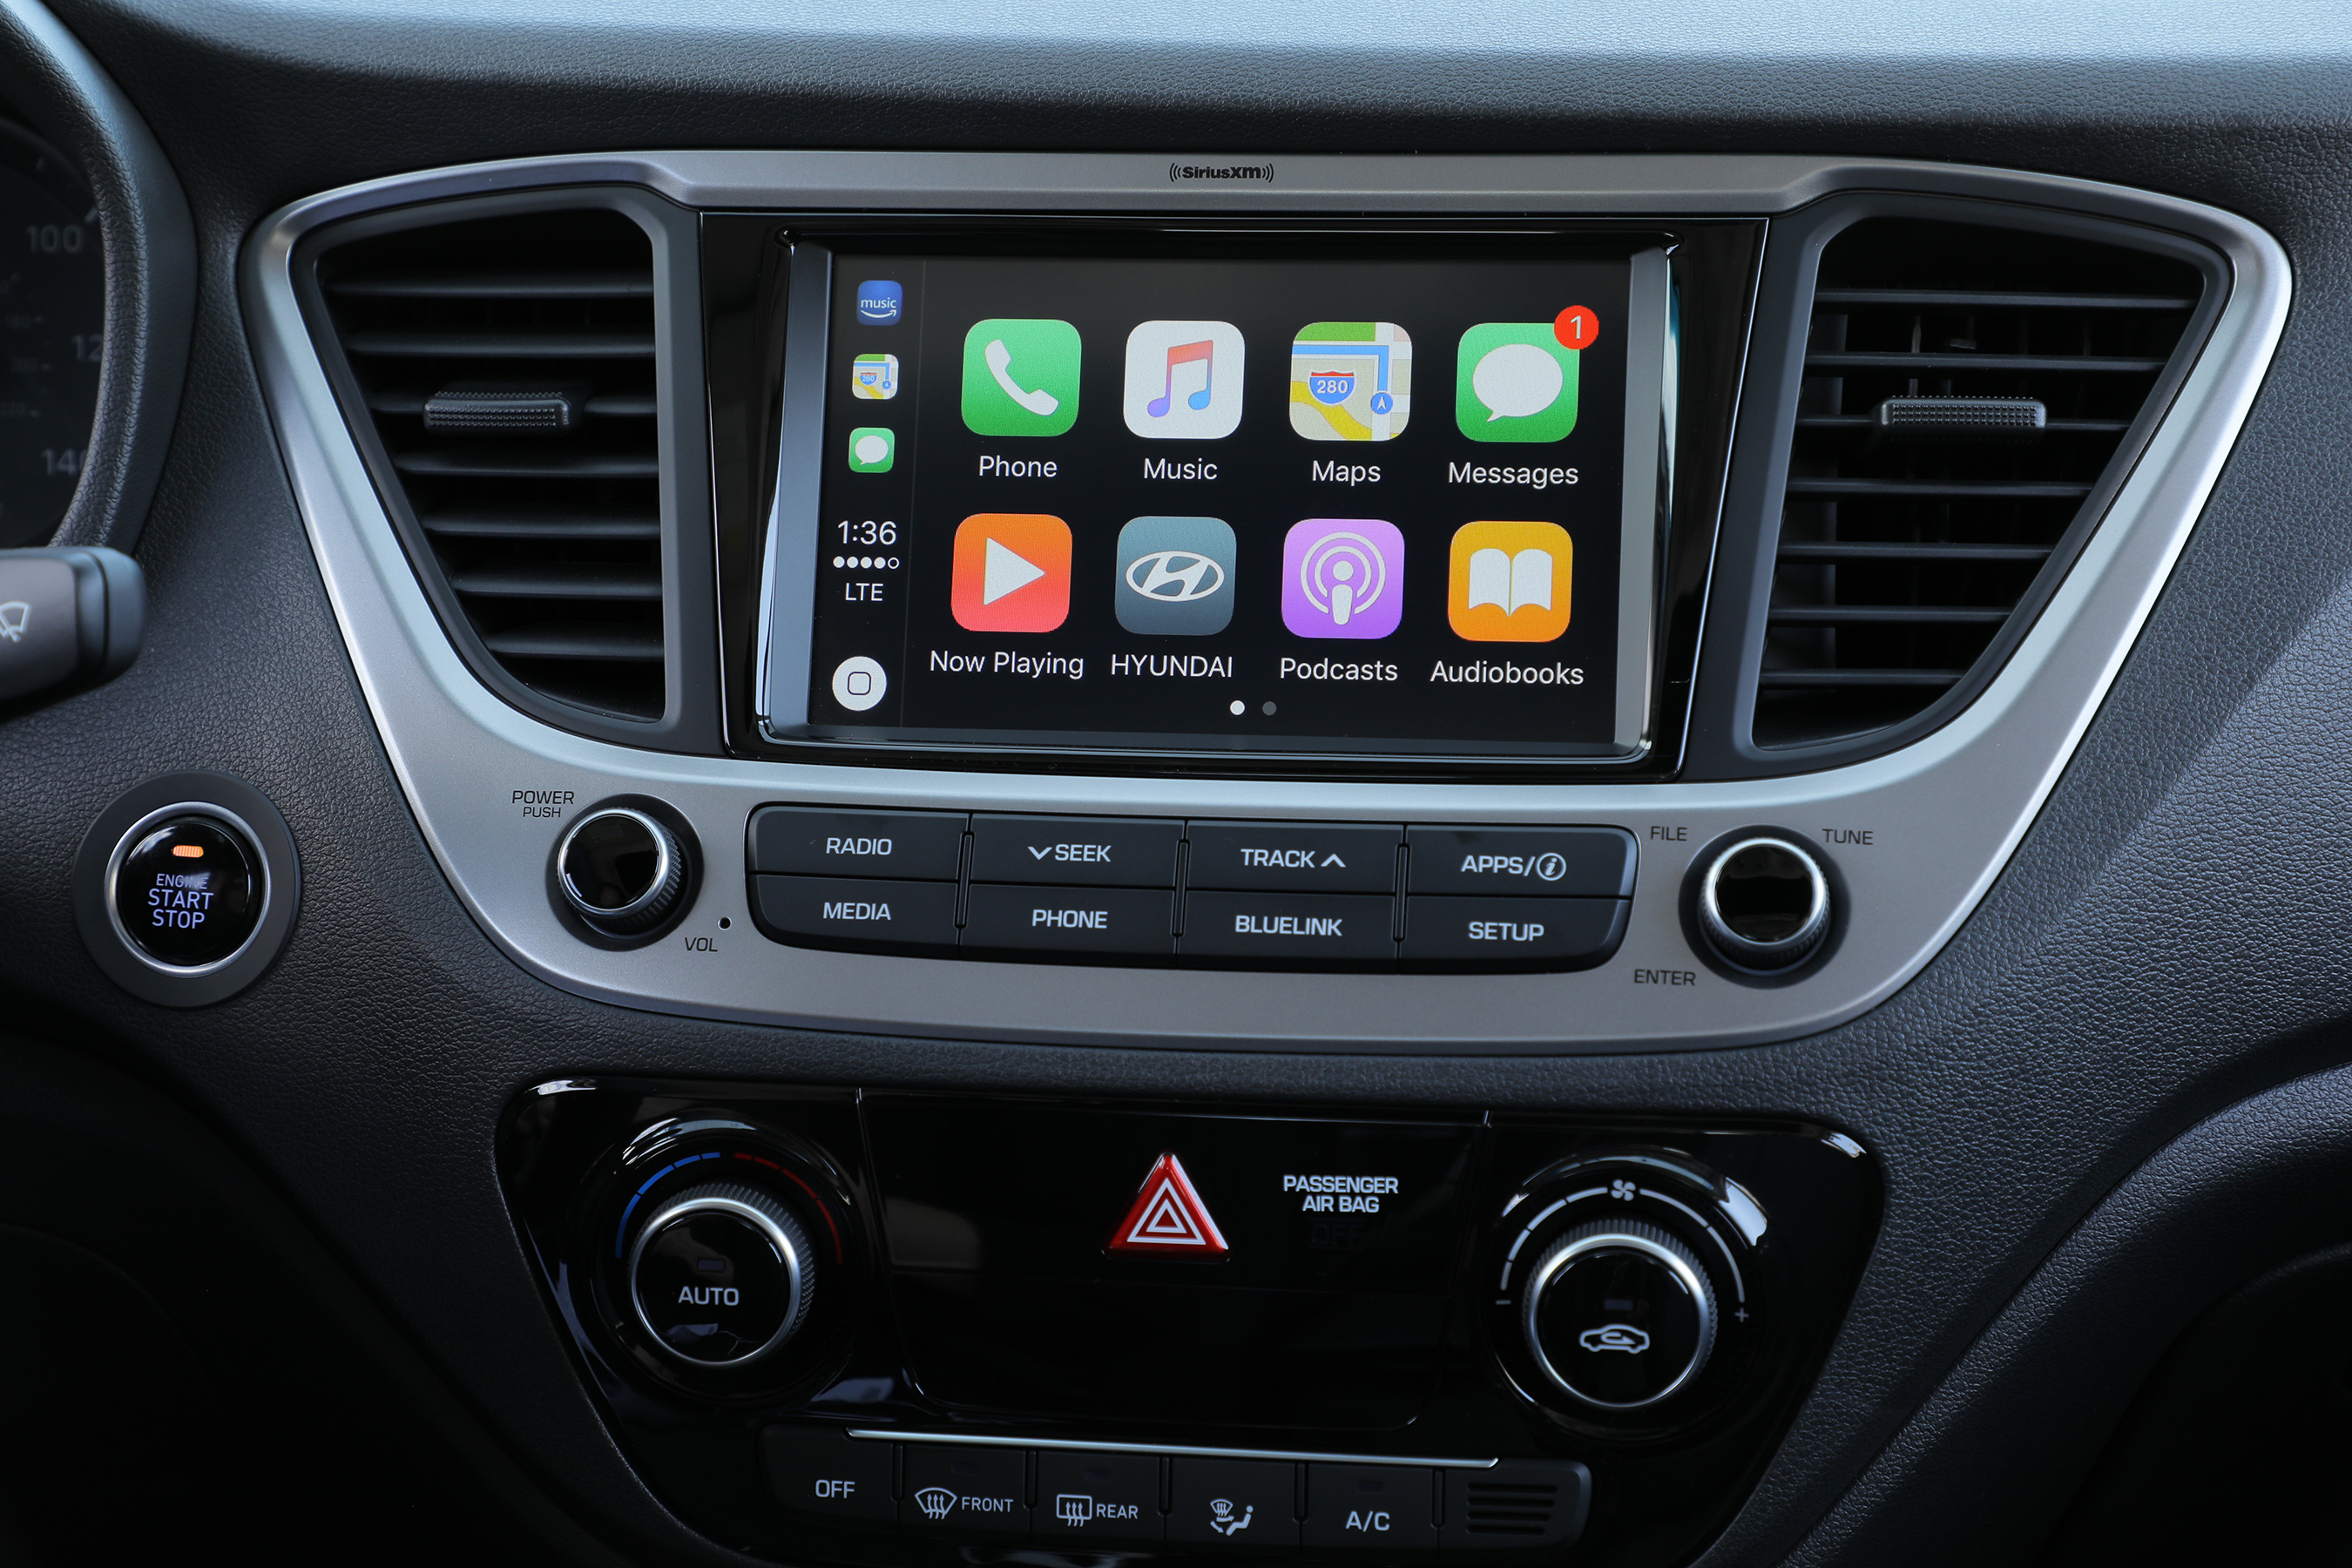 THE 7-INCH DISPLAY HAS BOTH APPLE CARPLAY™ AND ANDROID AUTO™ FOR SEAMLESS AND INTUITIVE OPERATION OF THE MOST COMMONLY USED SMARTPHONE FUNCTIONS, INCLUDING APP-BASED NAVIGATION, STREAMING AUDIO AND VOICE-CONTROLLED SEARCH CAPABILITIES.